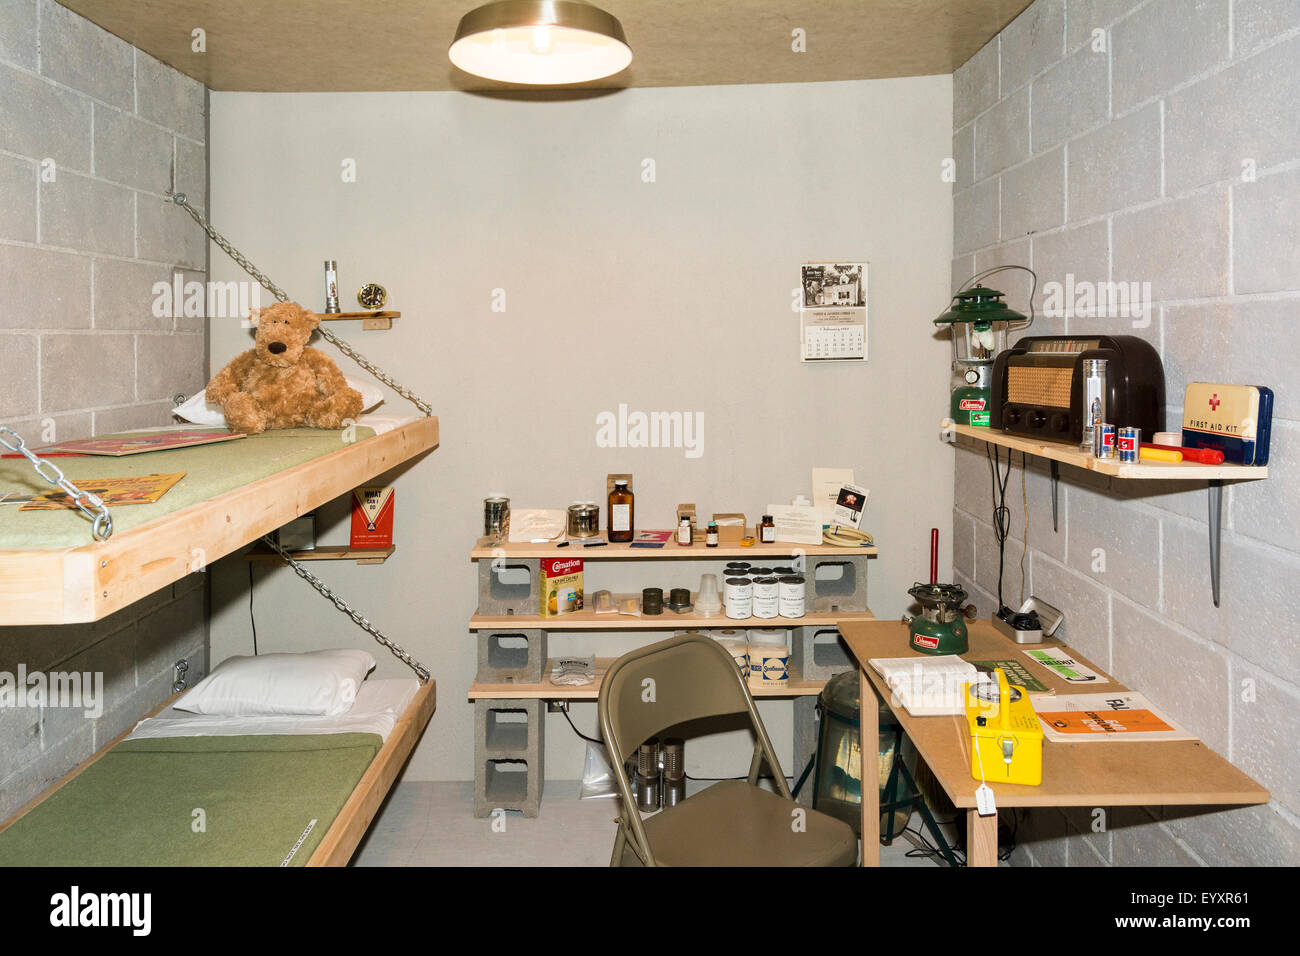 Nebraska, Ashland, Strategic Air & Space Museum, replica home bomb shelter circa 1950s - Stock Image